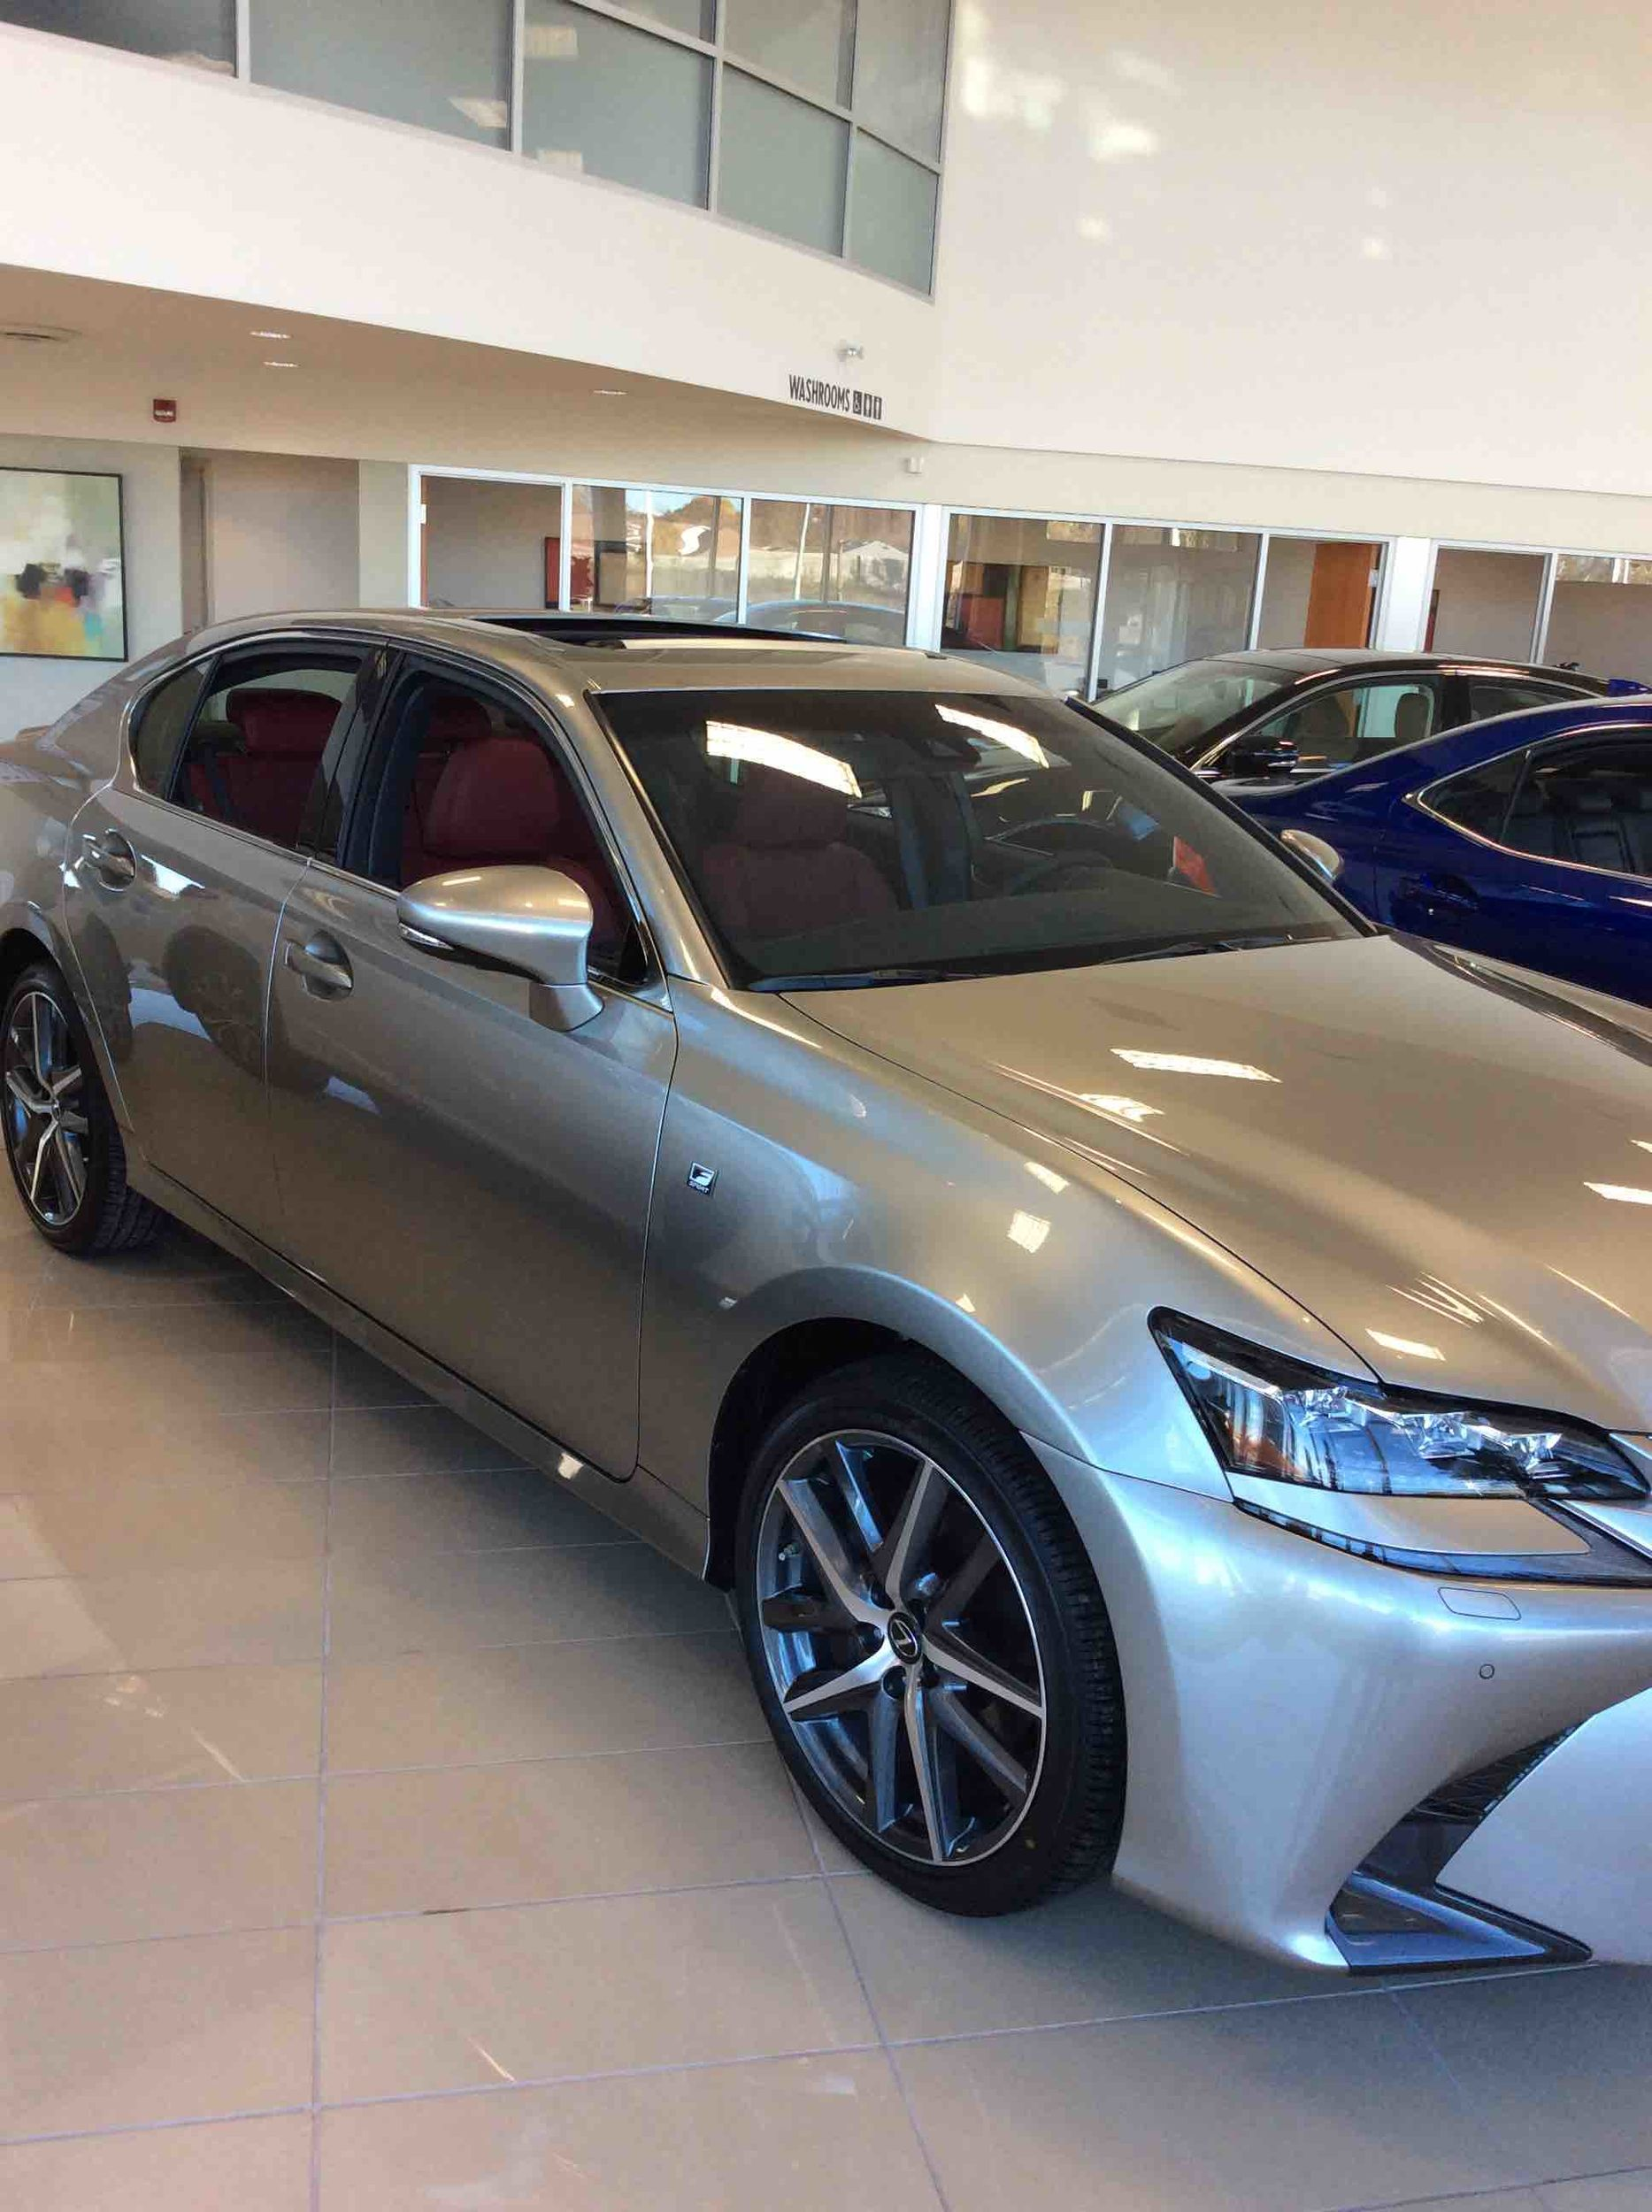 new 2017 lexus gs350 awd 6a for sale in kingston lexus of kingston in kingston. Black Bedroom Furniture Sets. Home Design Ideas